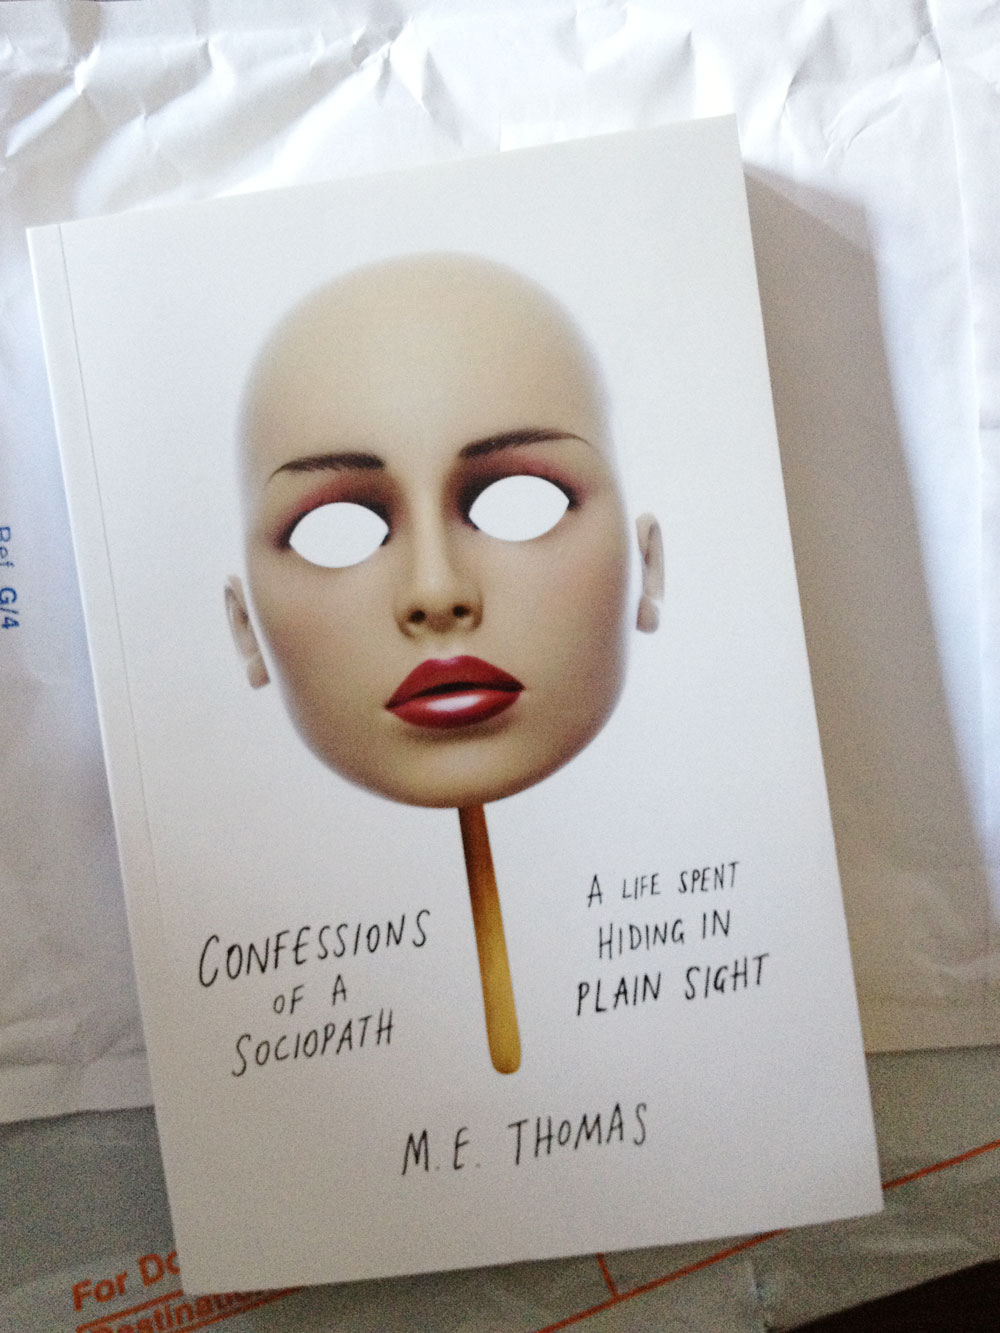 Confessions Of A Sociopath A Life Spent In Plain Sight